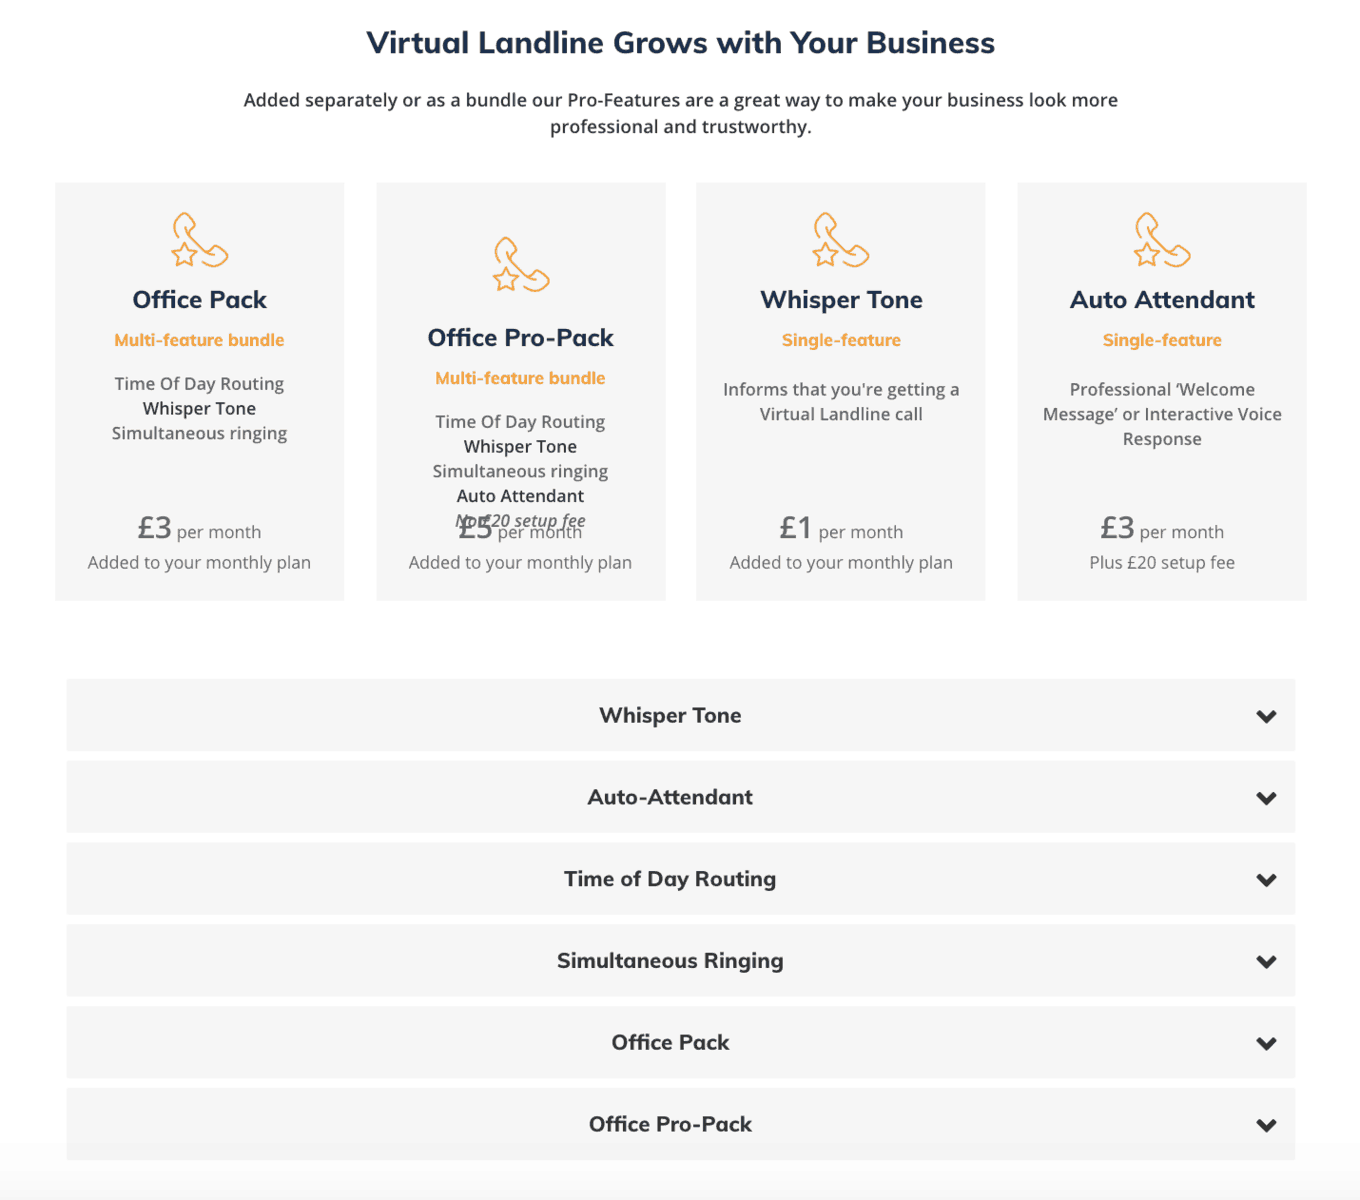 virtual landlines service and features